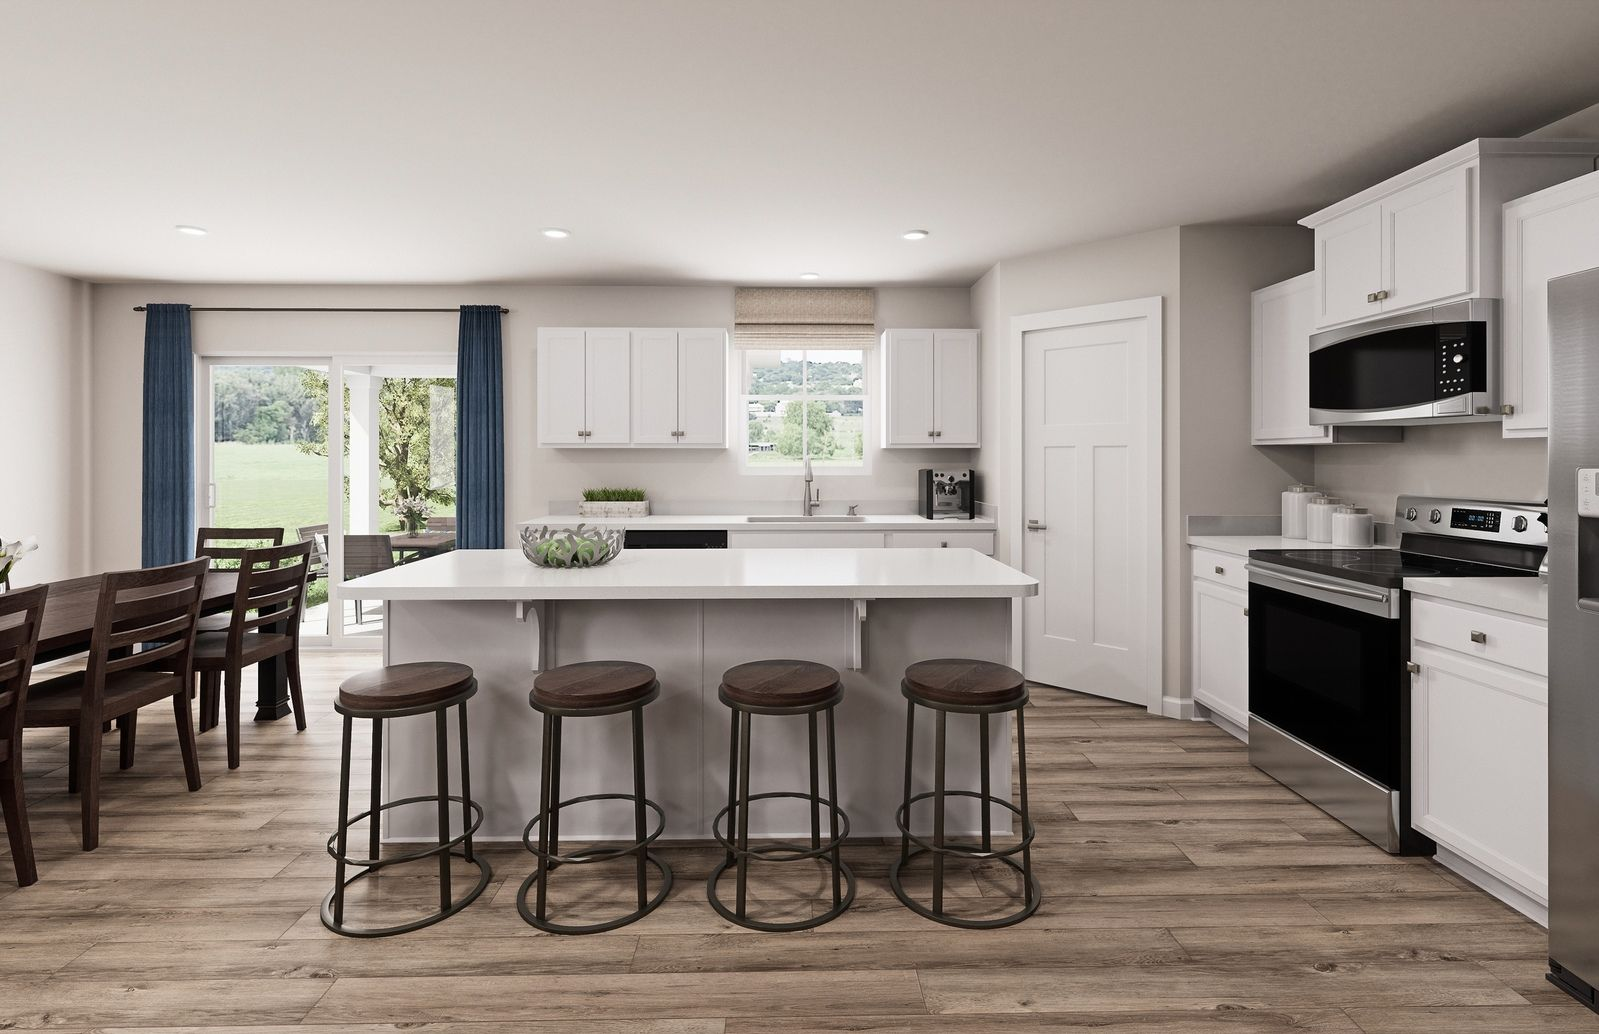 Kitchen featured in the Eden Cay By Ryan Homes in Charlotte, NC